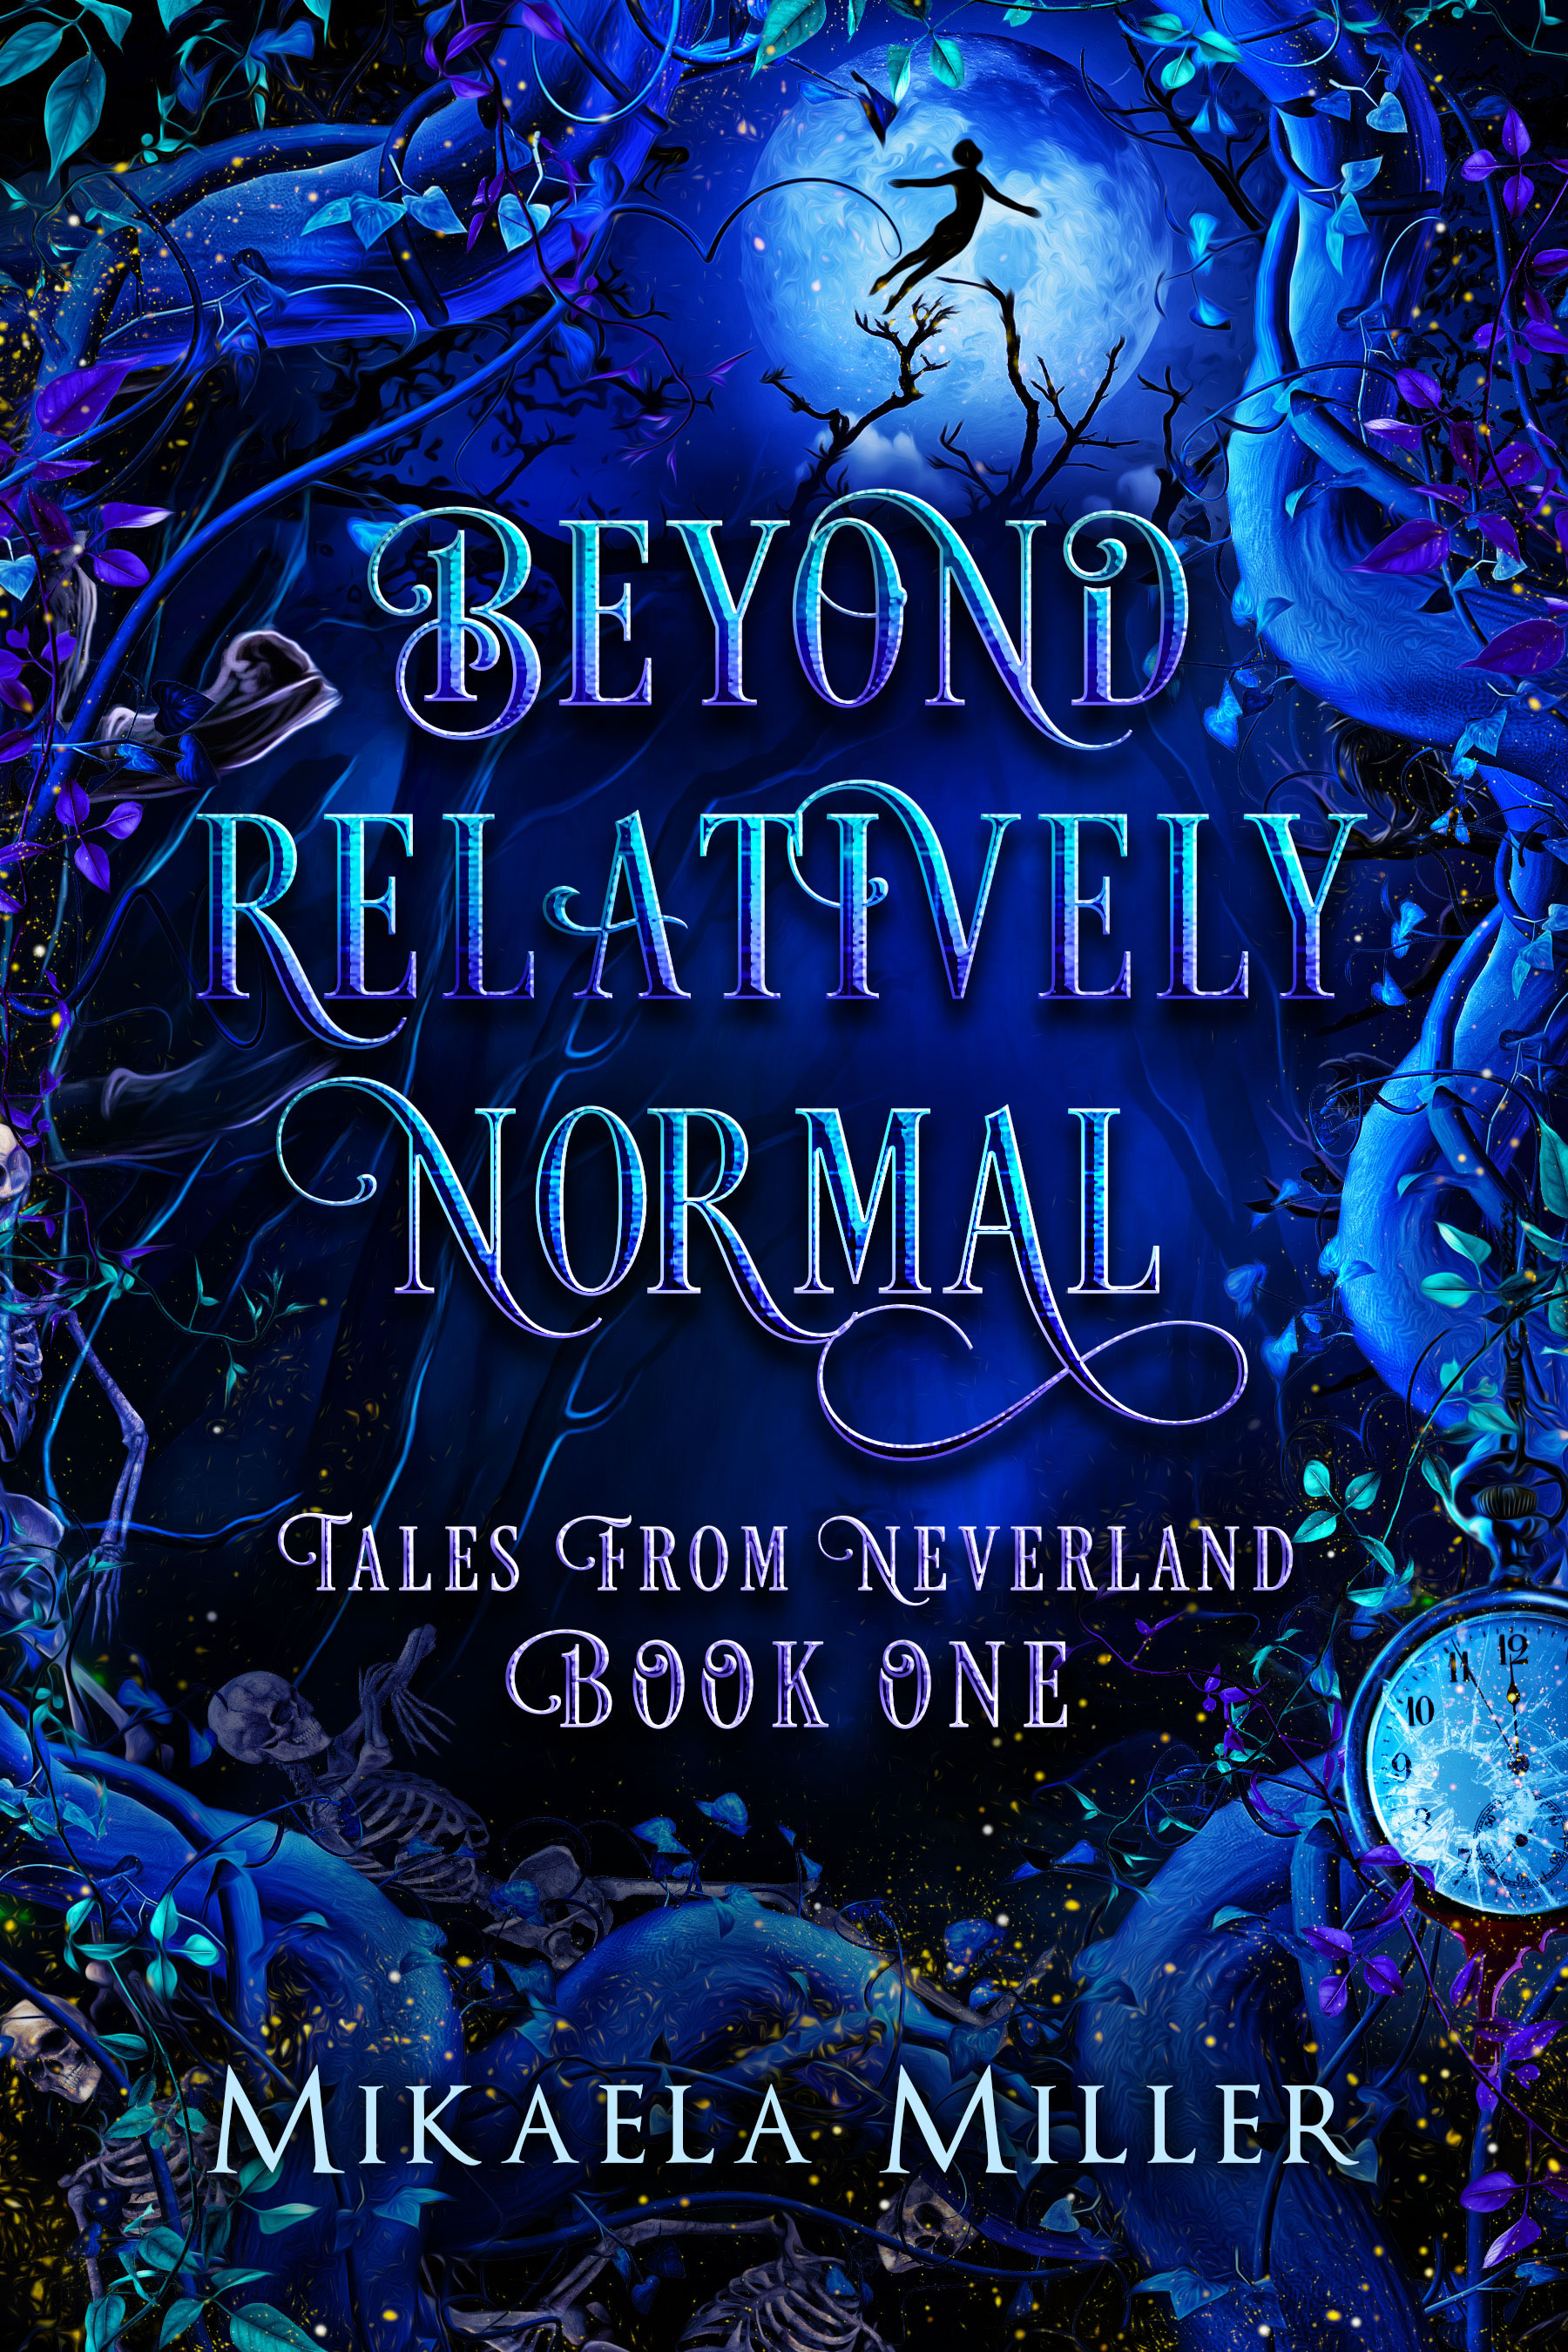 Beyond Relatively Normal cover